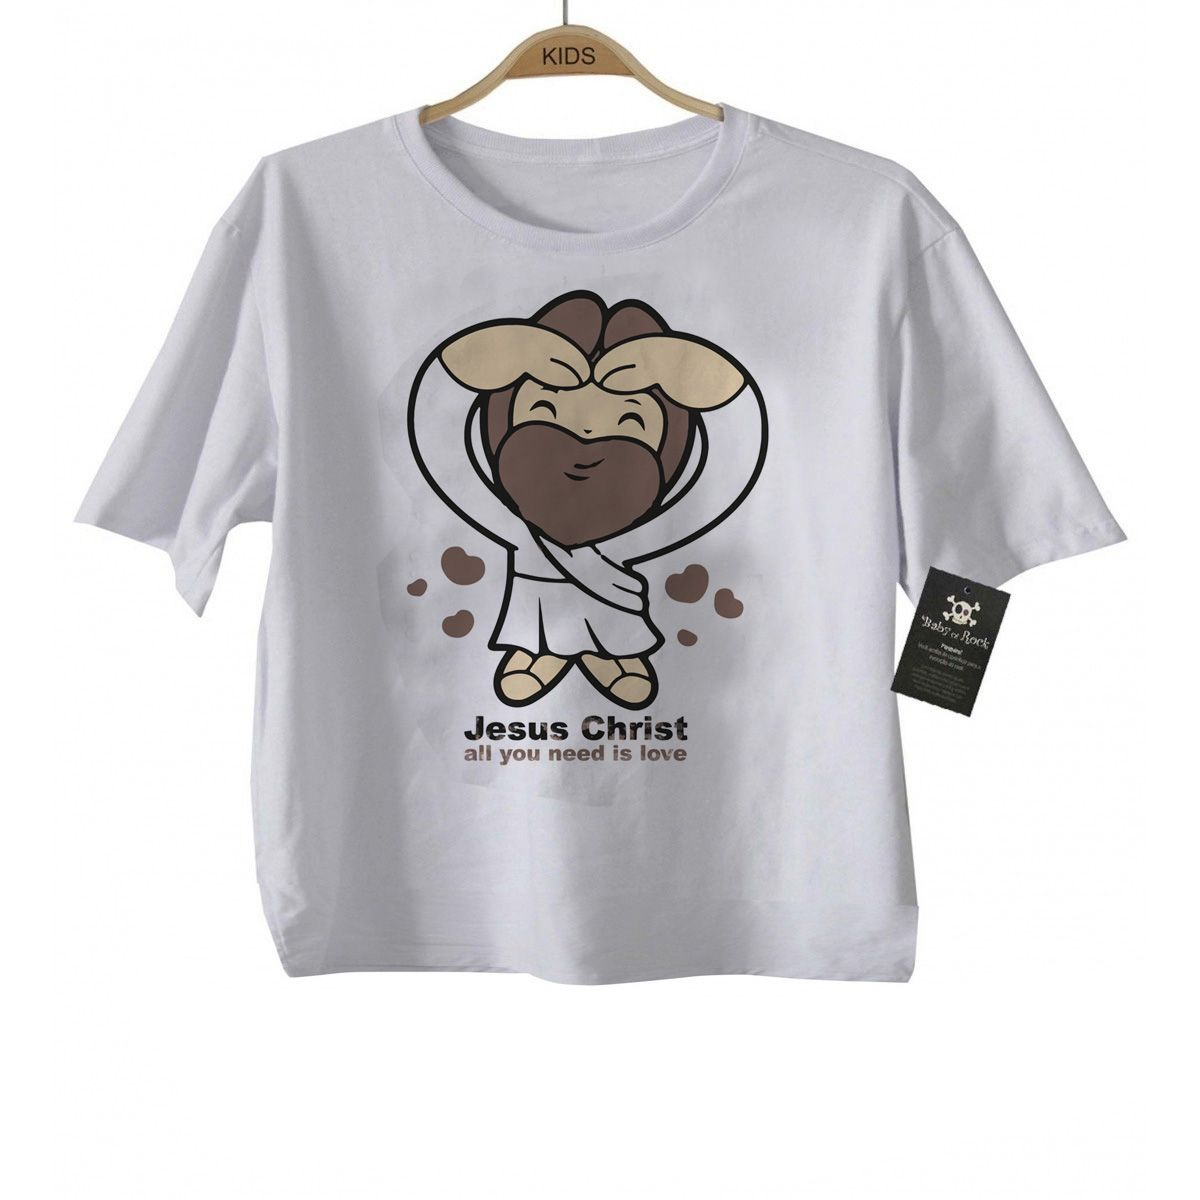 Camiseta Infantil  Gospel All you Need is Love - White  - Baby Monster S/A